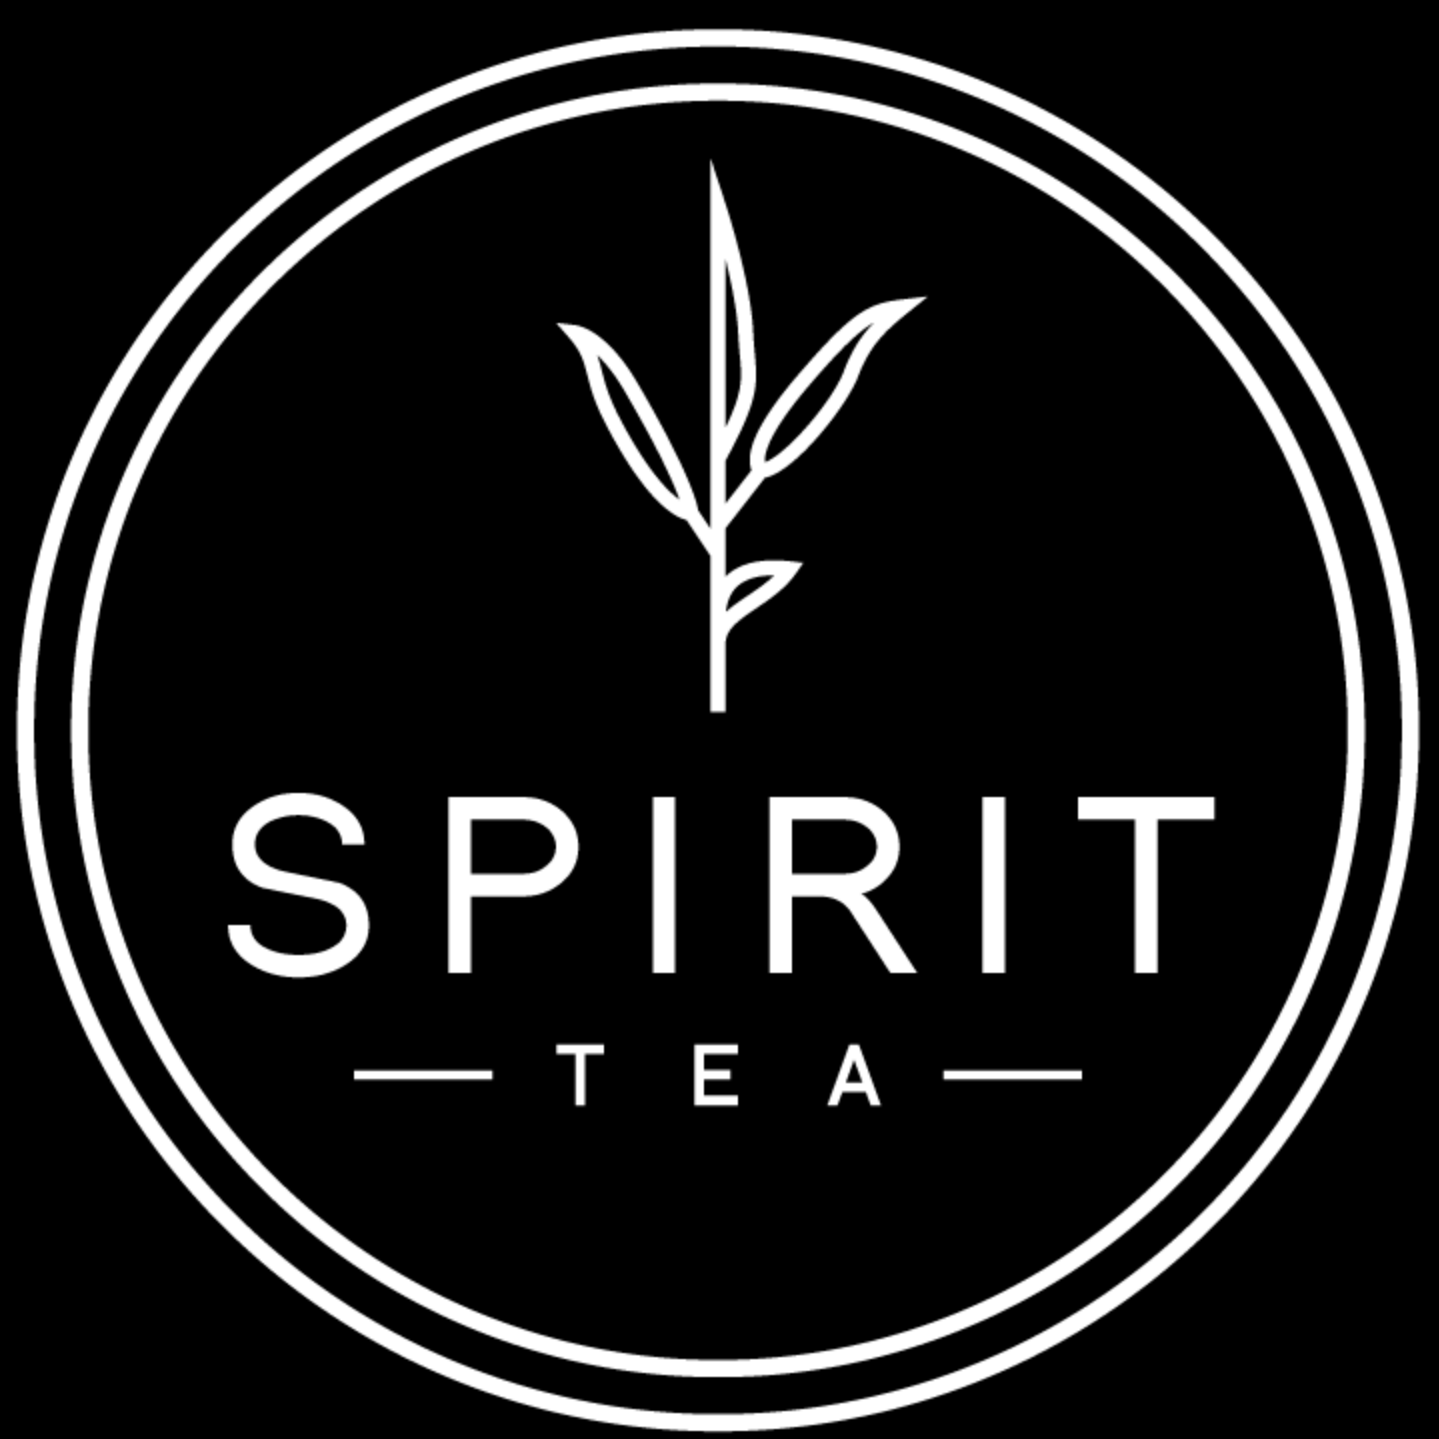 Buy Loose Leaf Tea Online| Spirit Tea Company